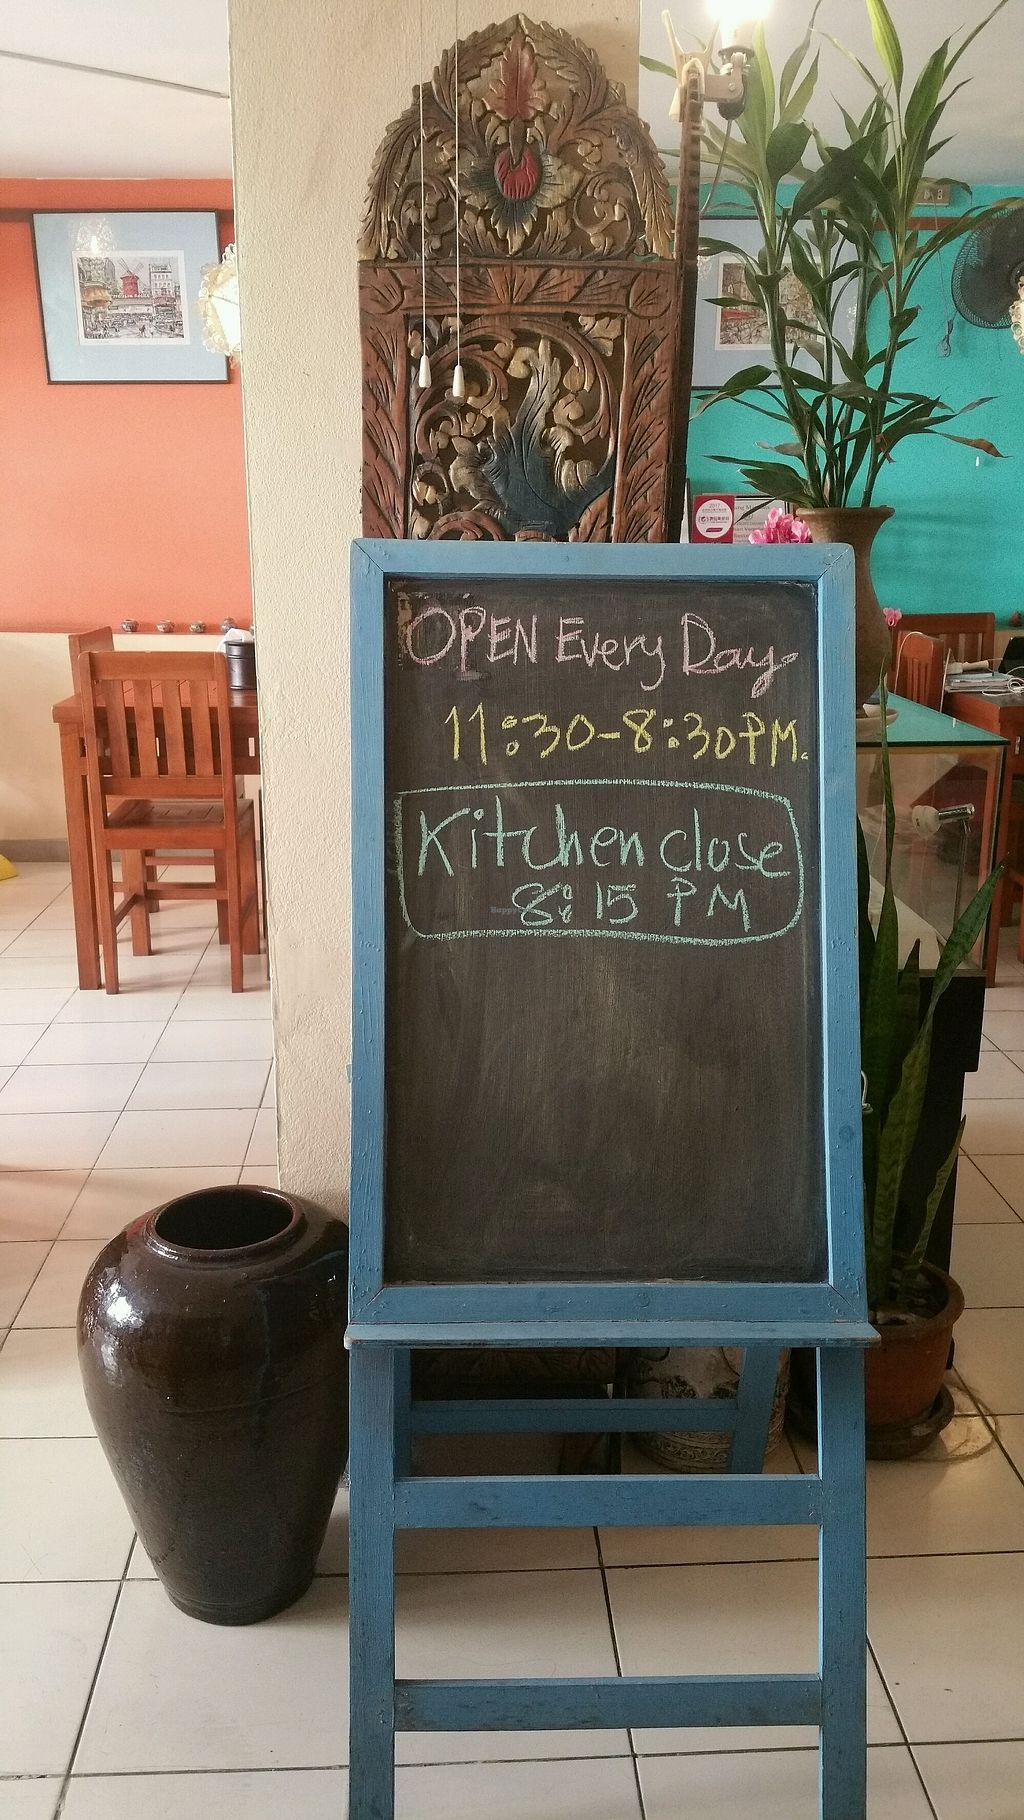 "Photo of Anchan Vegetarian Restaurant  by <a href=""/members/profile/Mike%20Munsie"">Mike Munsie</a> <br/>opening hours <br/> February 4, 2018  - <a href='/contact/abuse/image/34920/354718'>Report</a>"